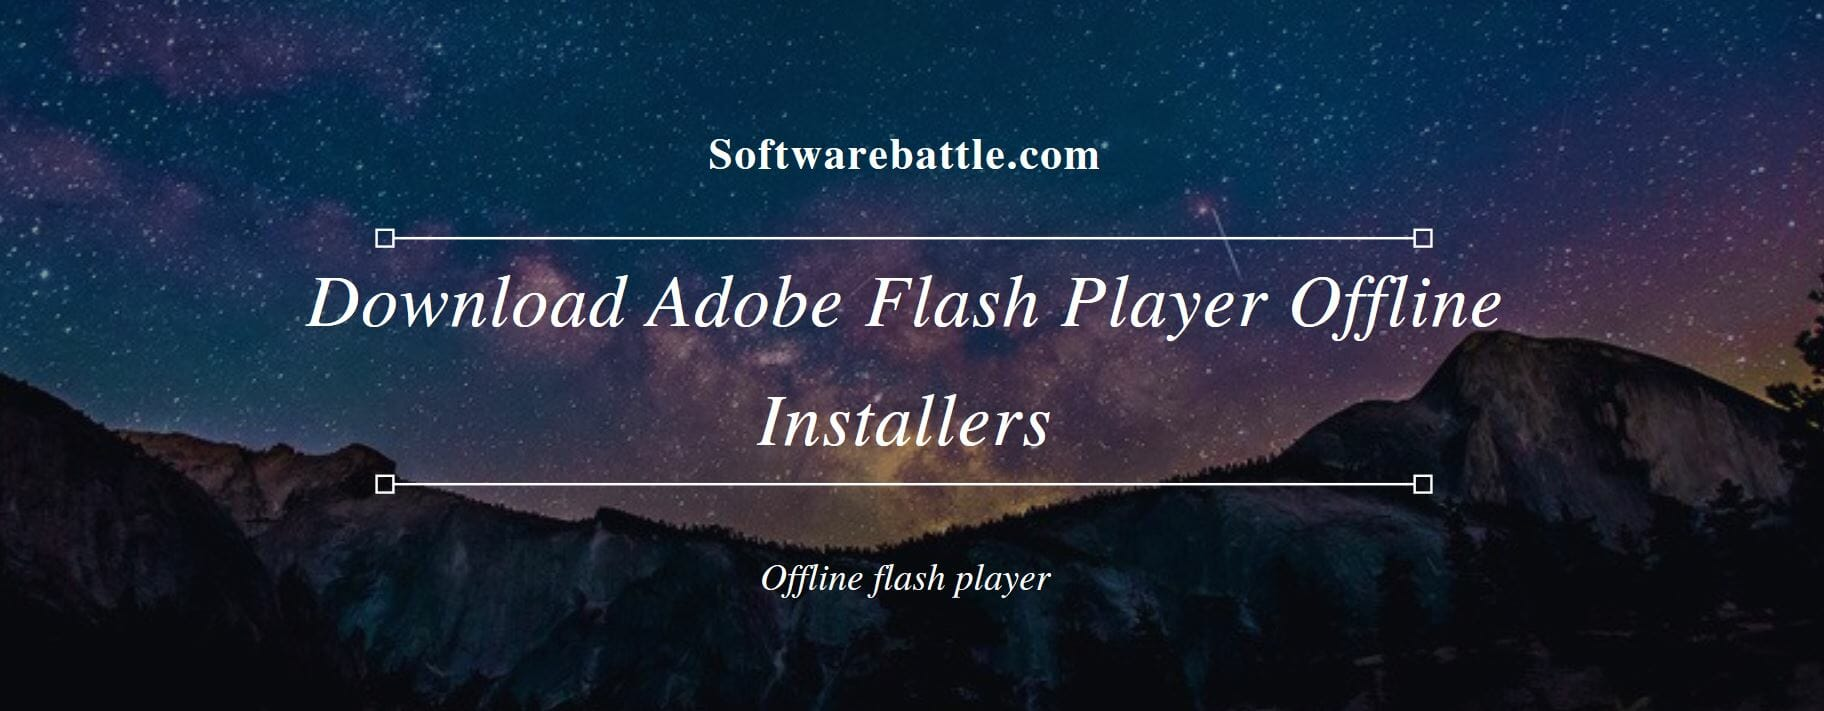 adobe flash player free download standalone installer